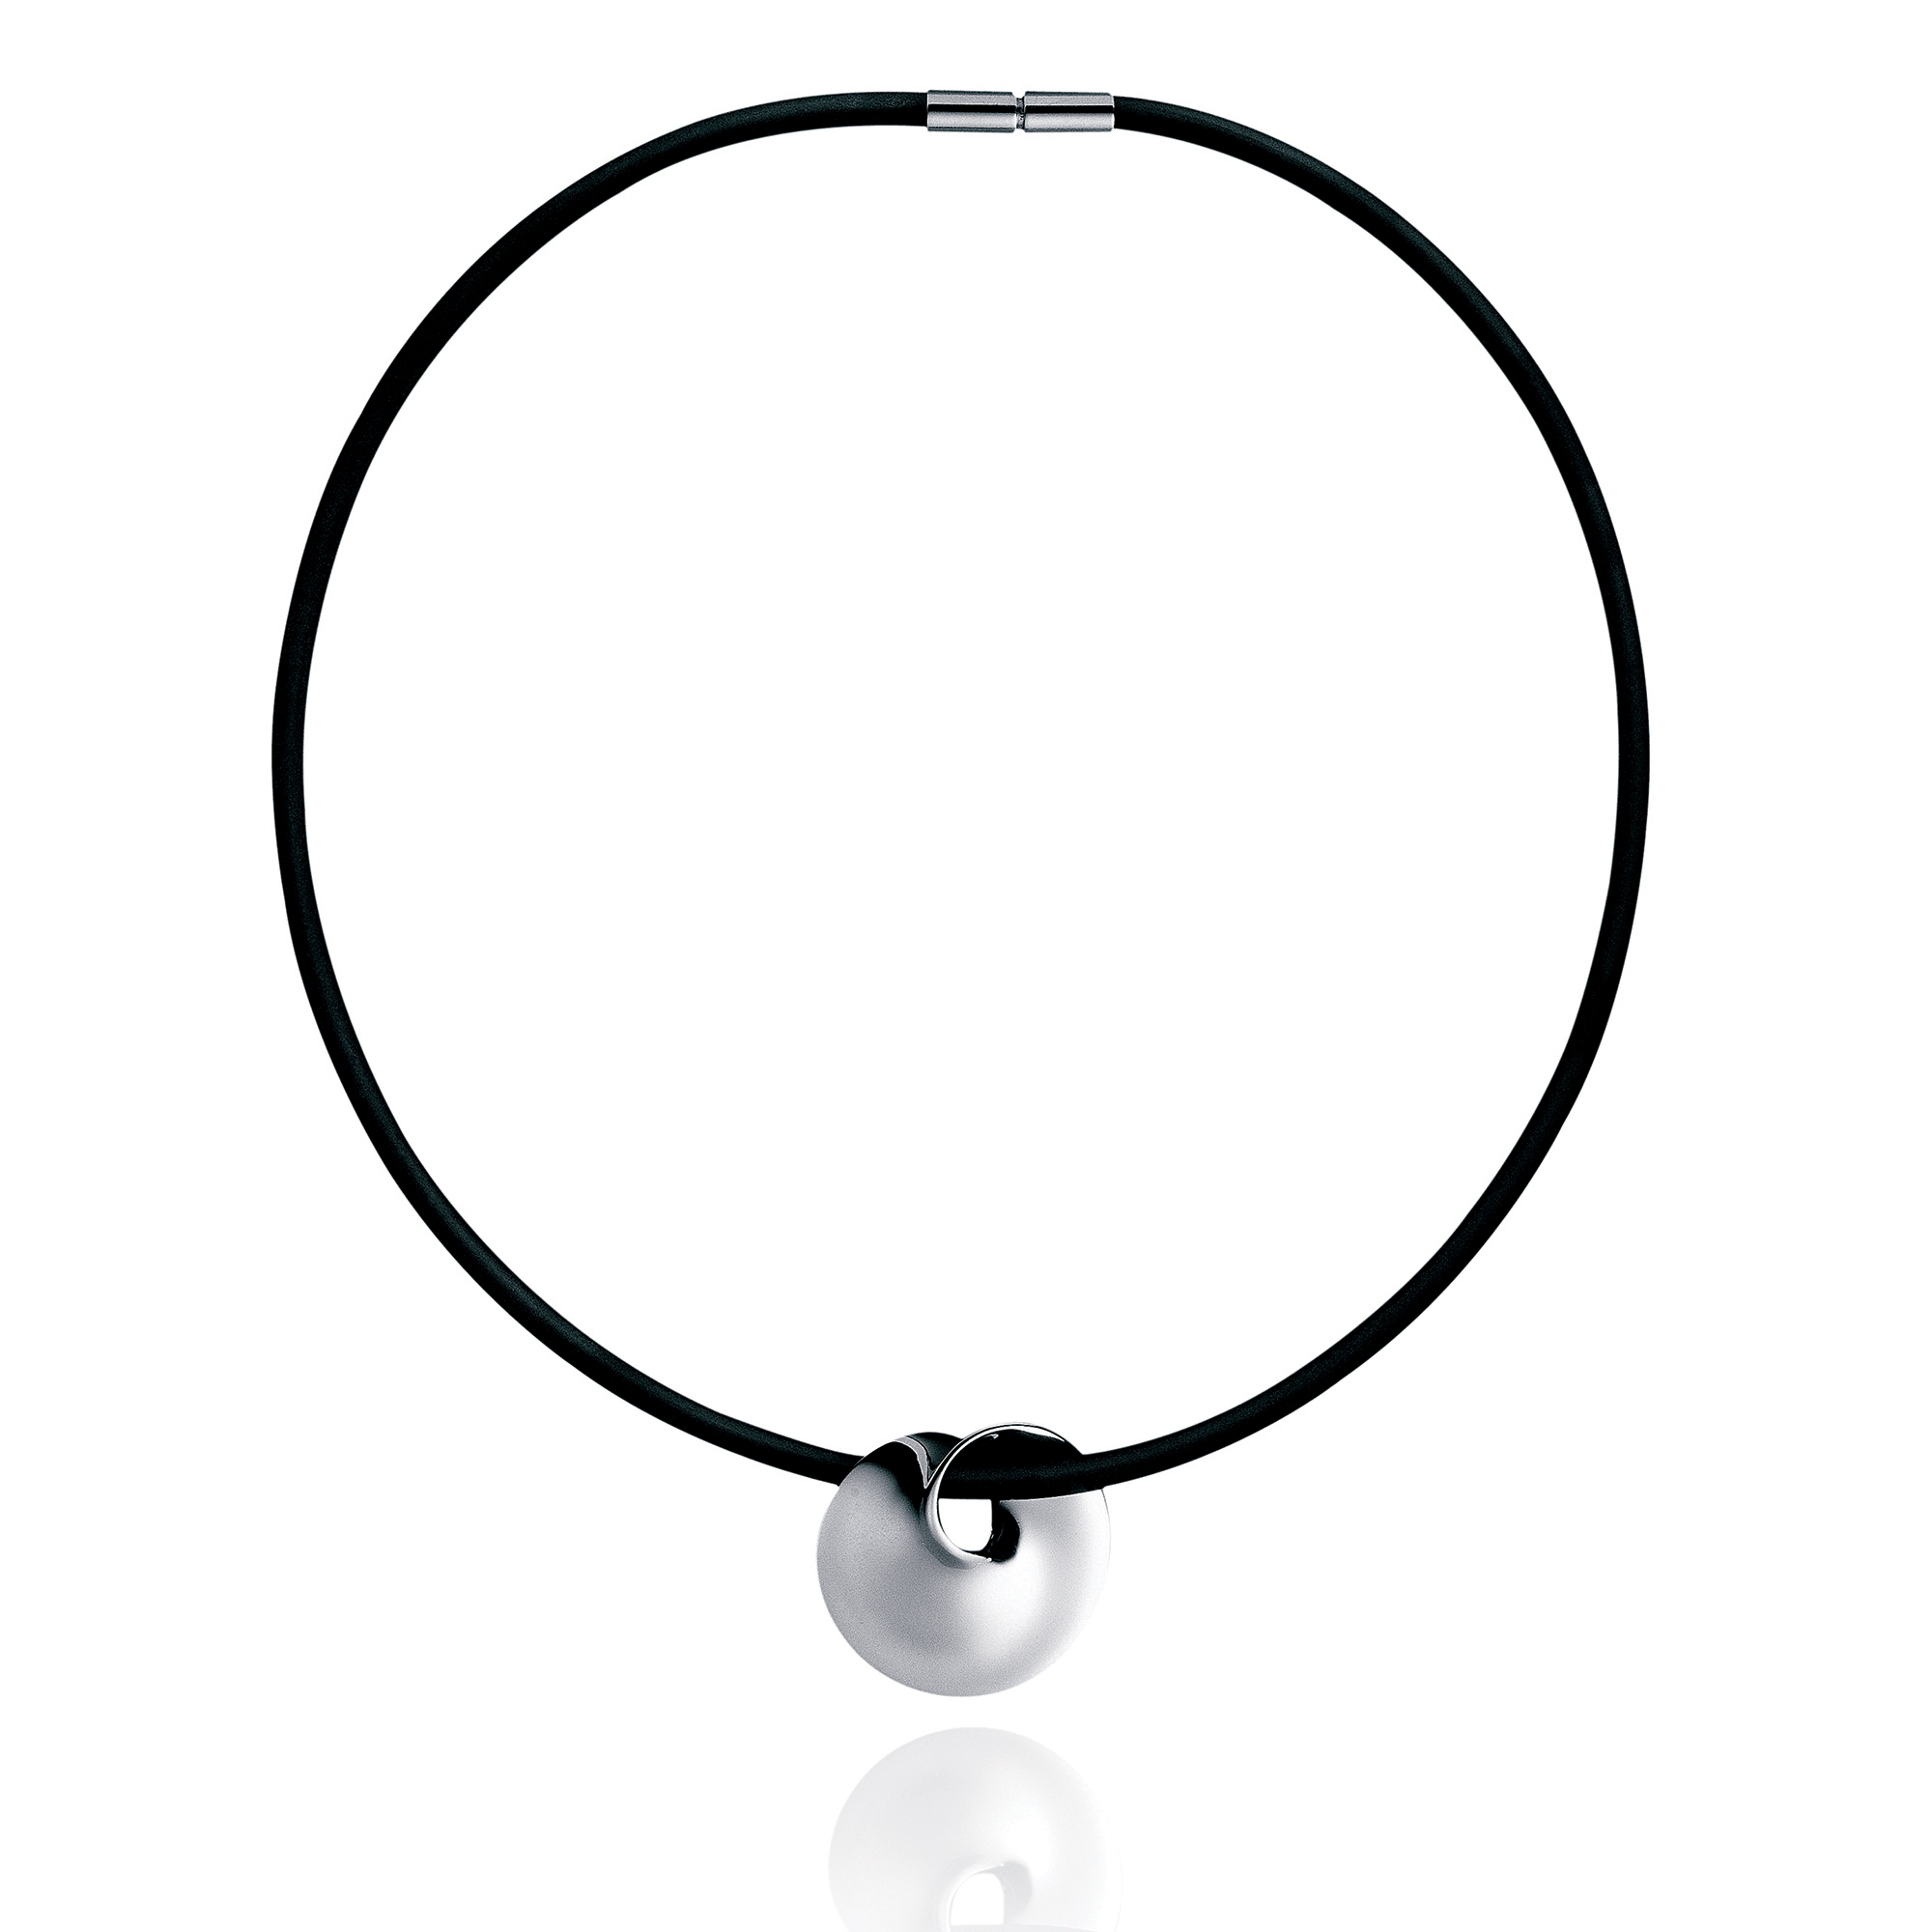 Georg Jensen Mobius Swirl Pendant Necklace